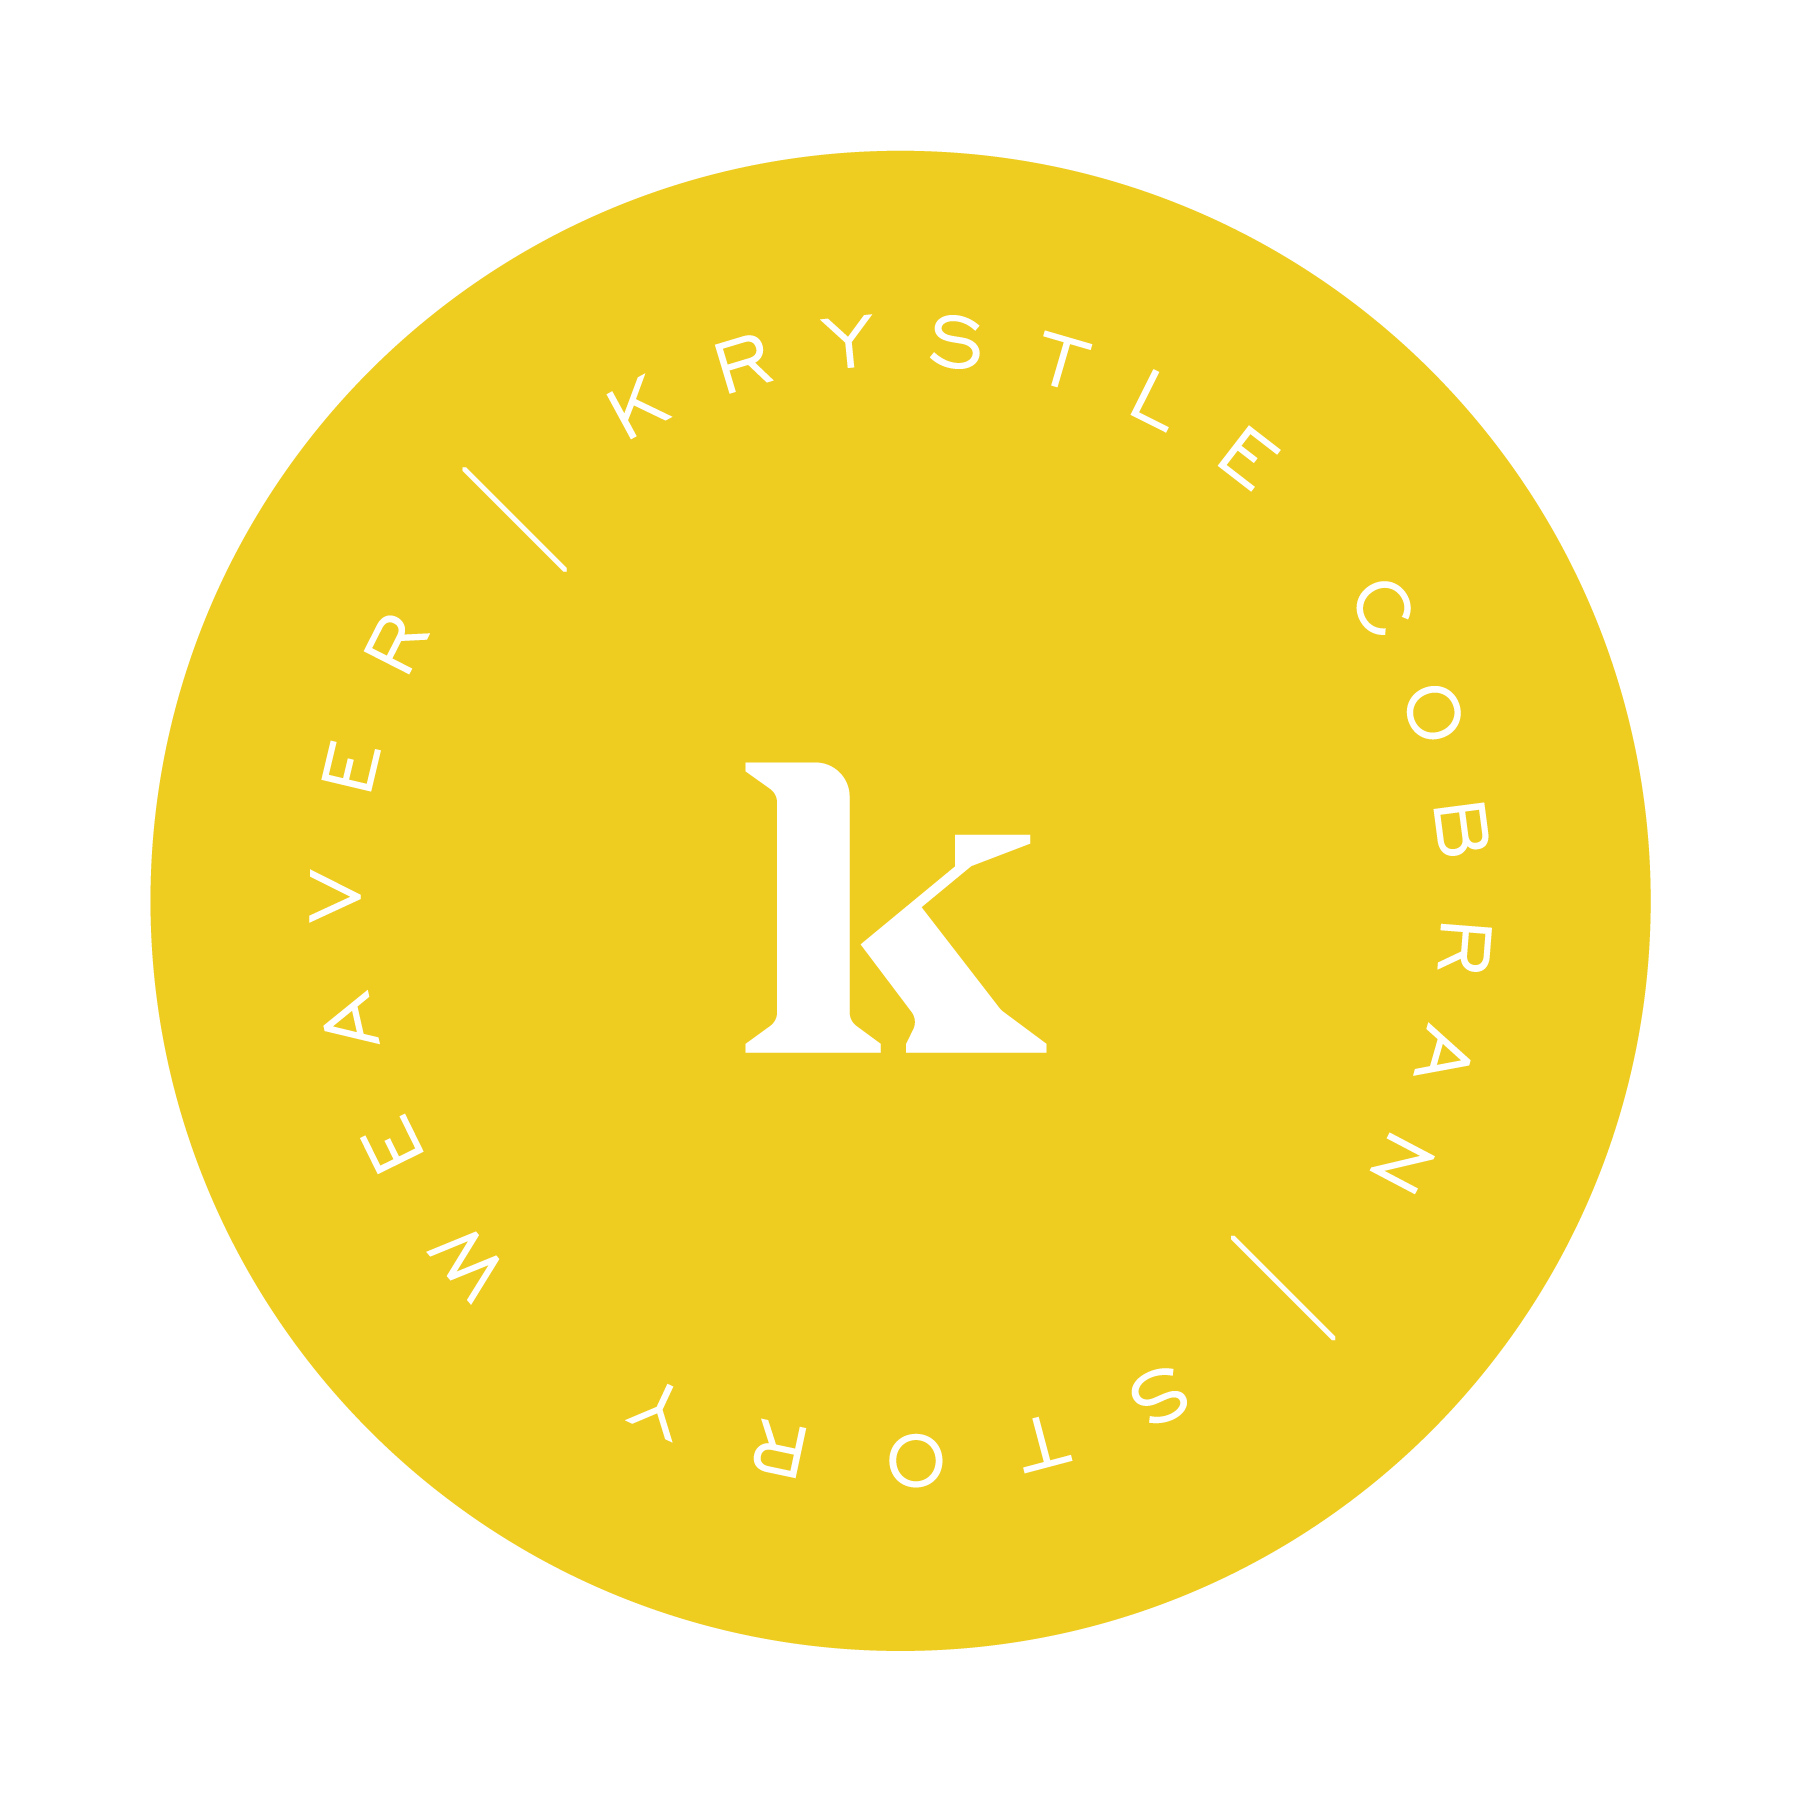 """Maybe stumbling is part of how we learn. Maybe the weaknesses we discover are tiny seedlings waiting to be nourished into new strengths."" - - @krystlecobran"